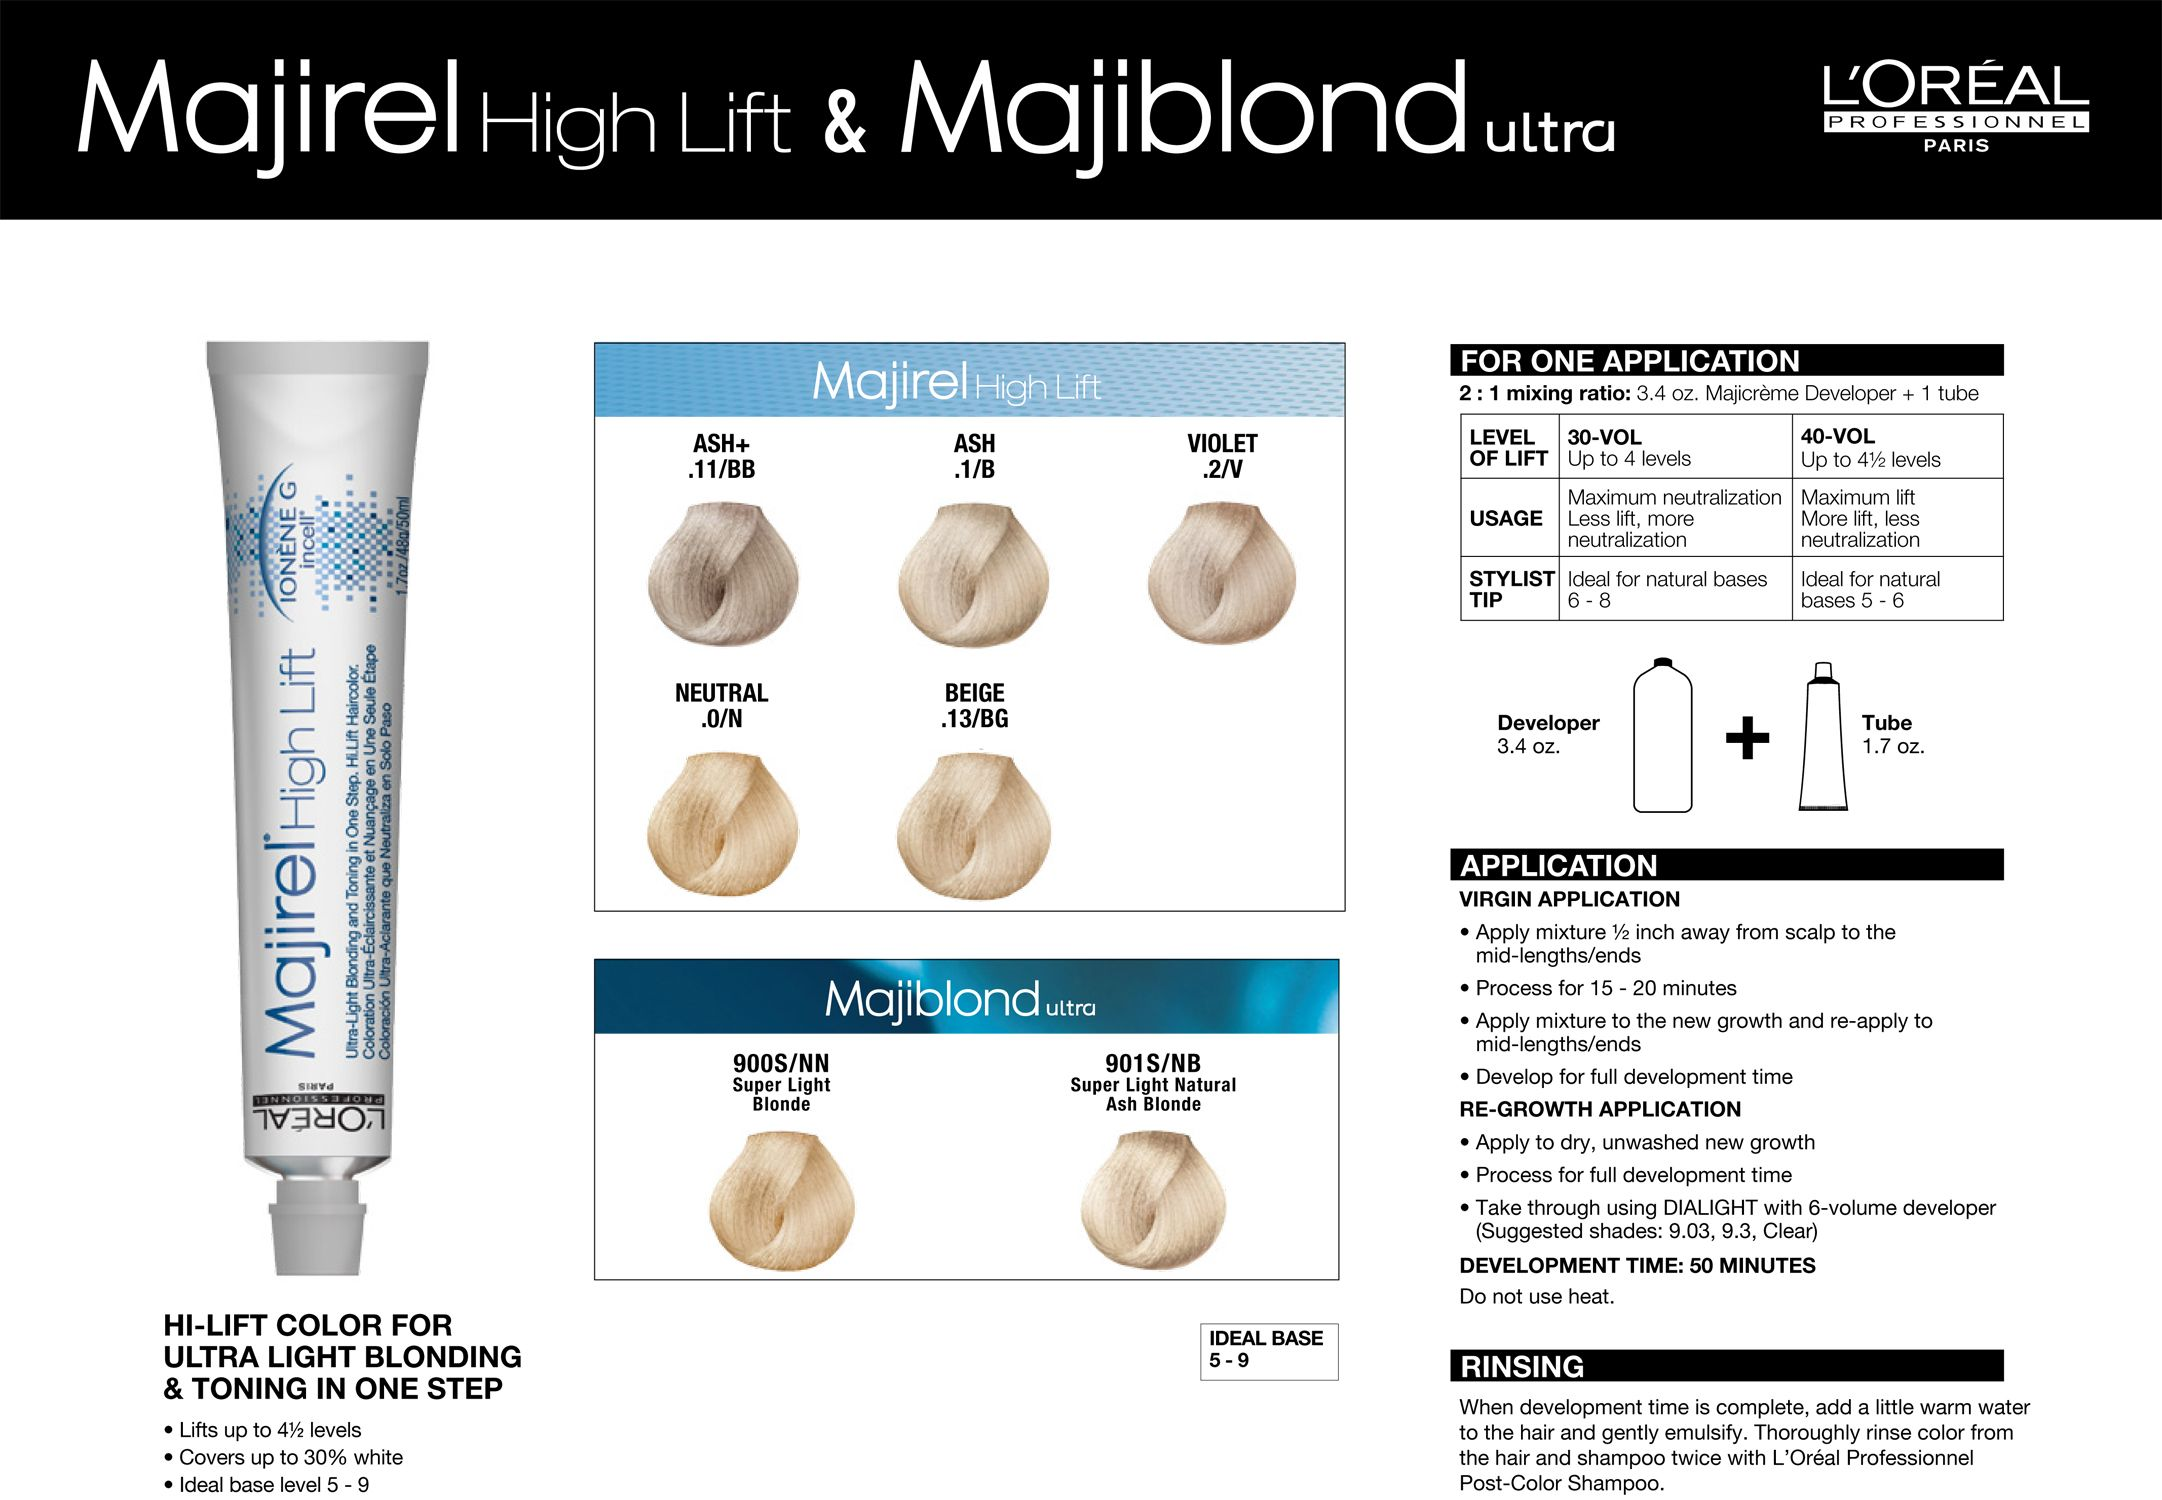 Majirel High Lift Majiblond Ultra Color Chart And Formulation Guidelines